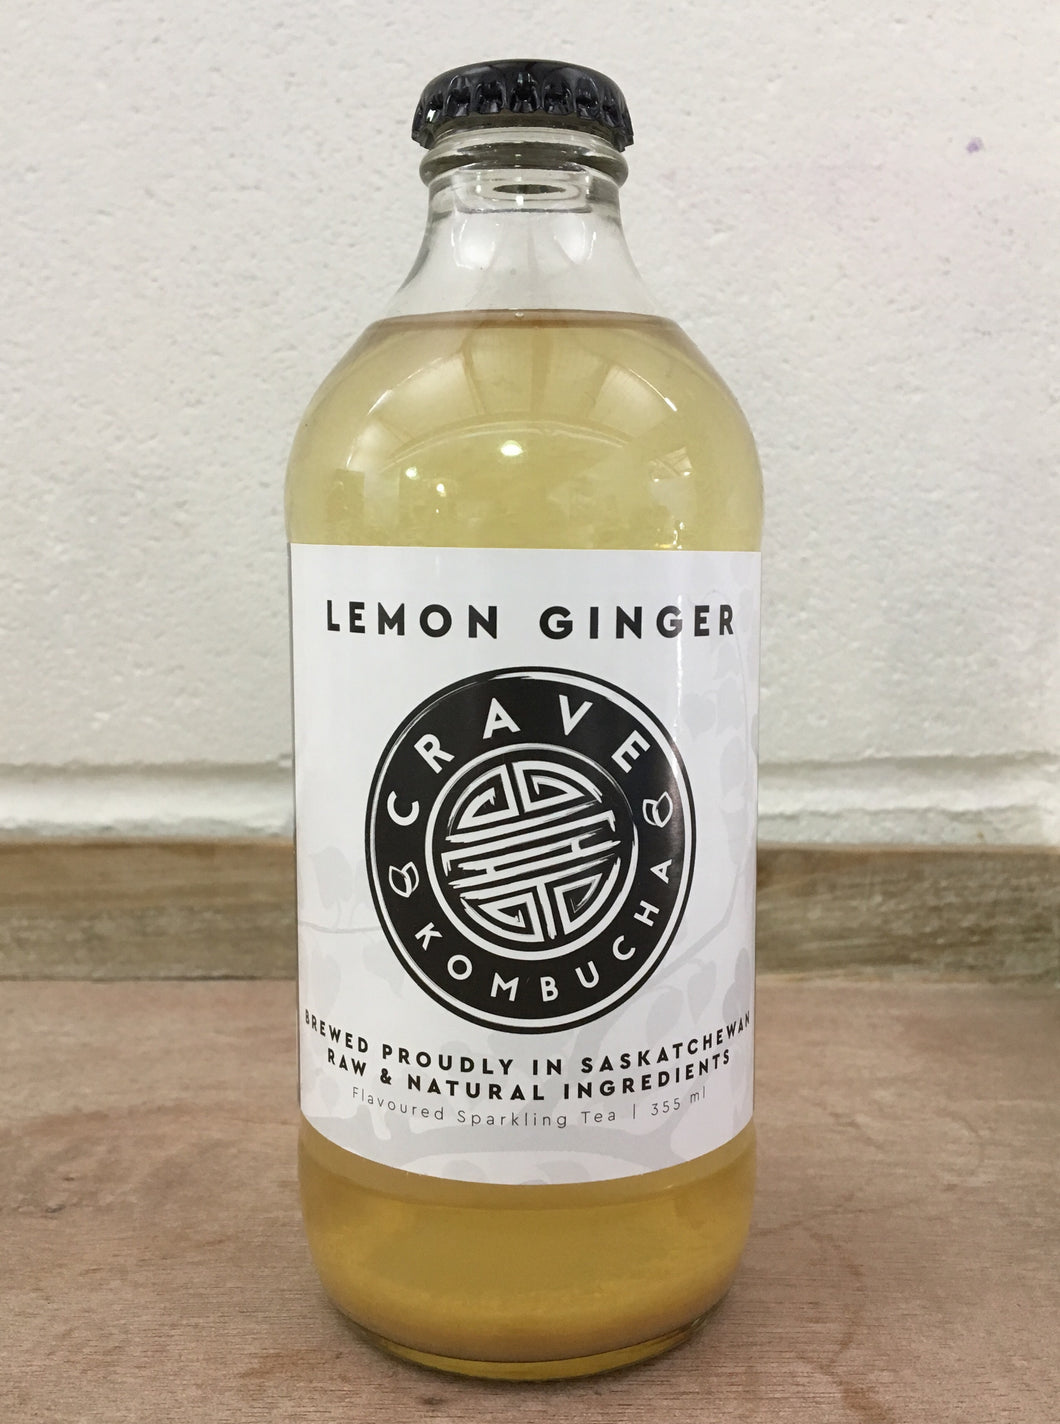 Crave Kombucha Lemon Ginger 355ml